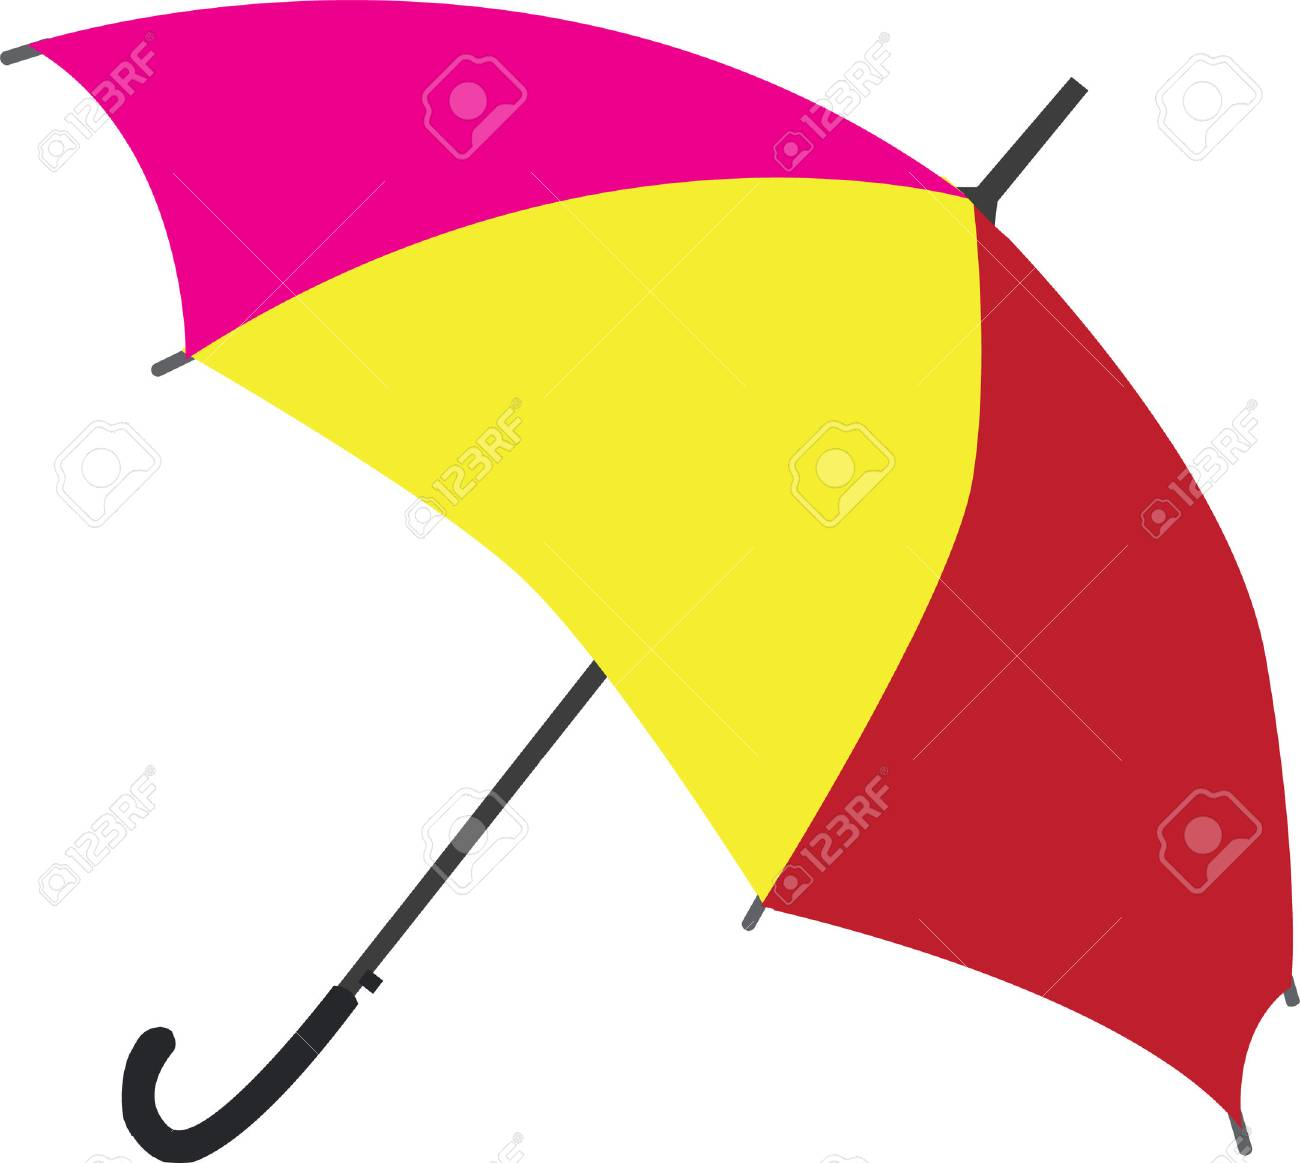 umbrella Stock Vector - 7000170